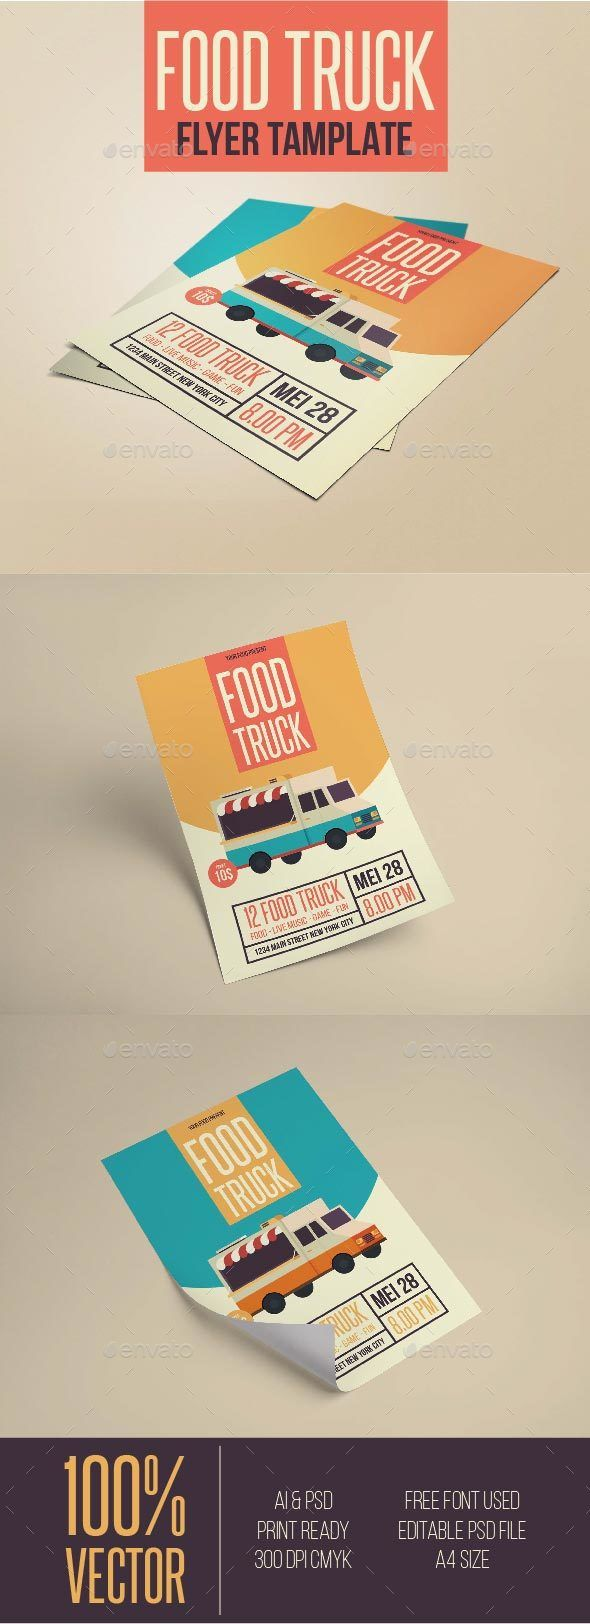 Food Infographic Food Truck Flyer Template PSD AI Illustrator - Food truck flyer template